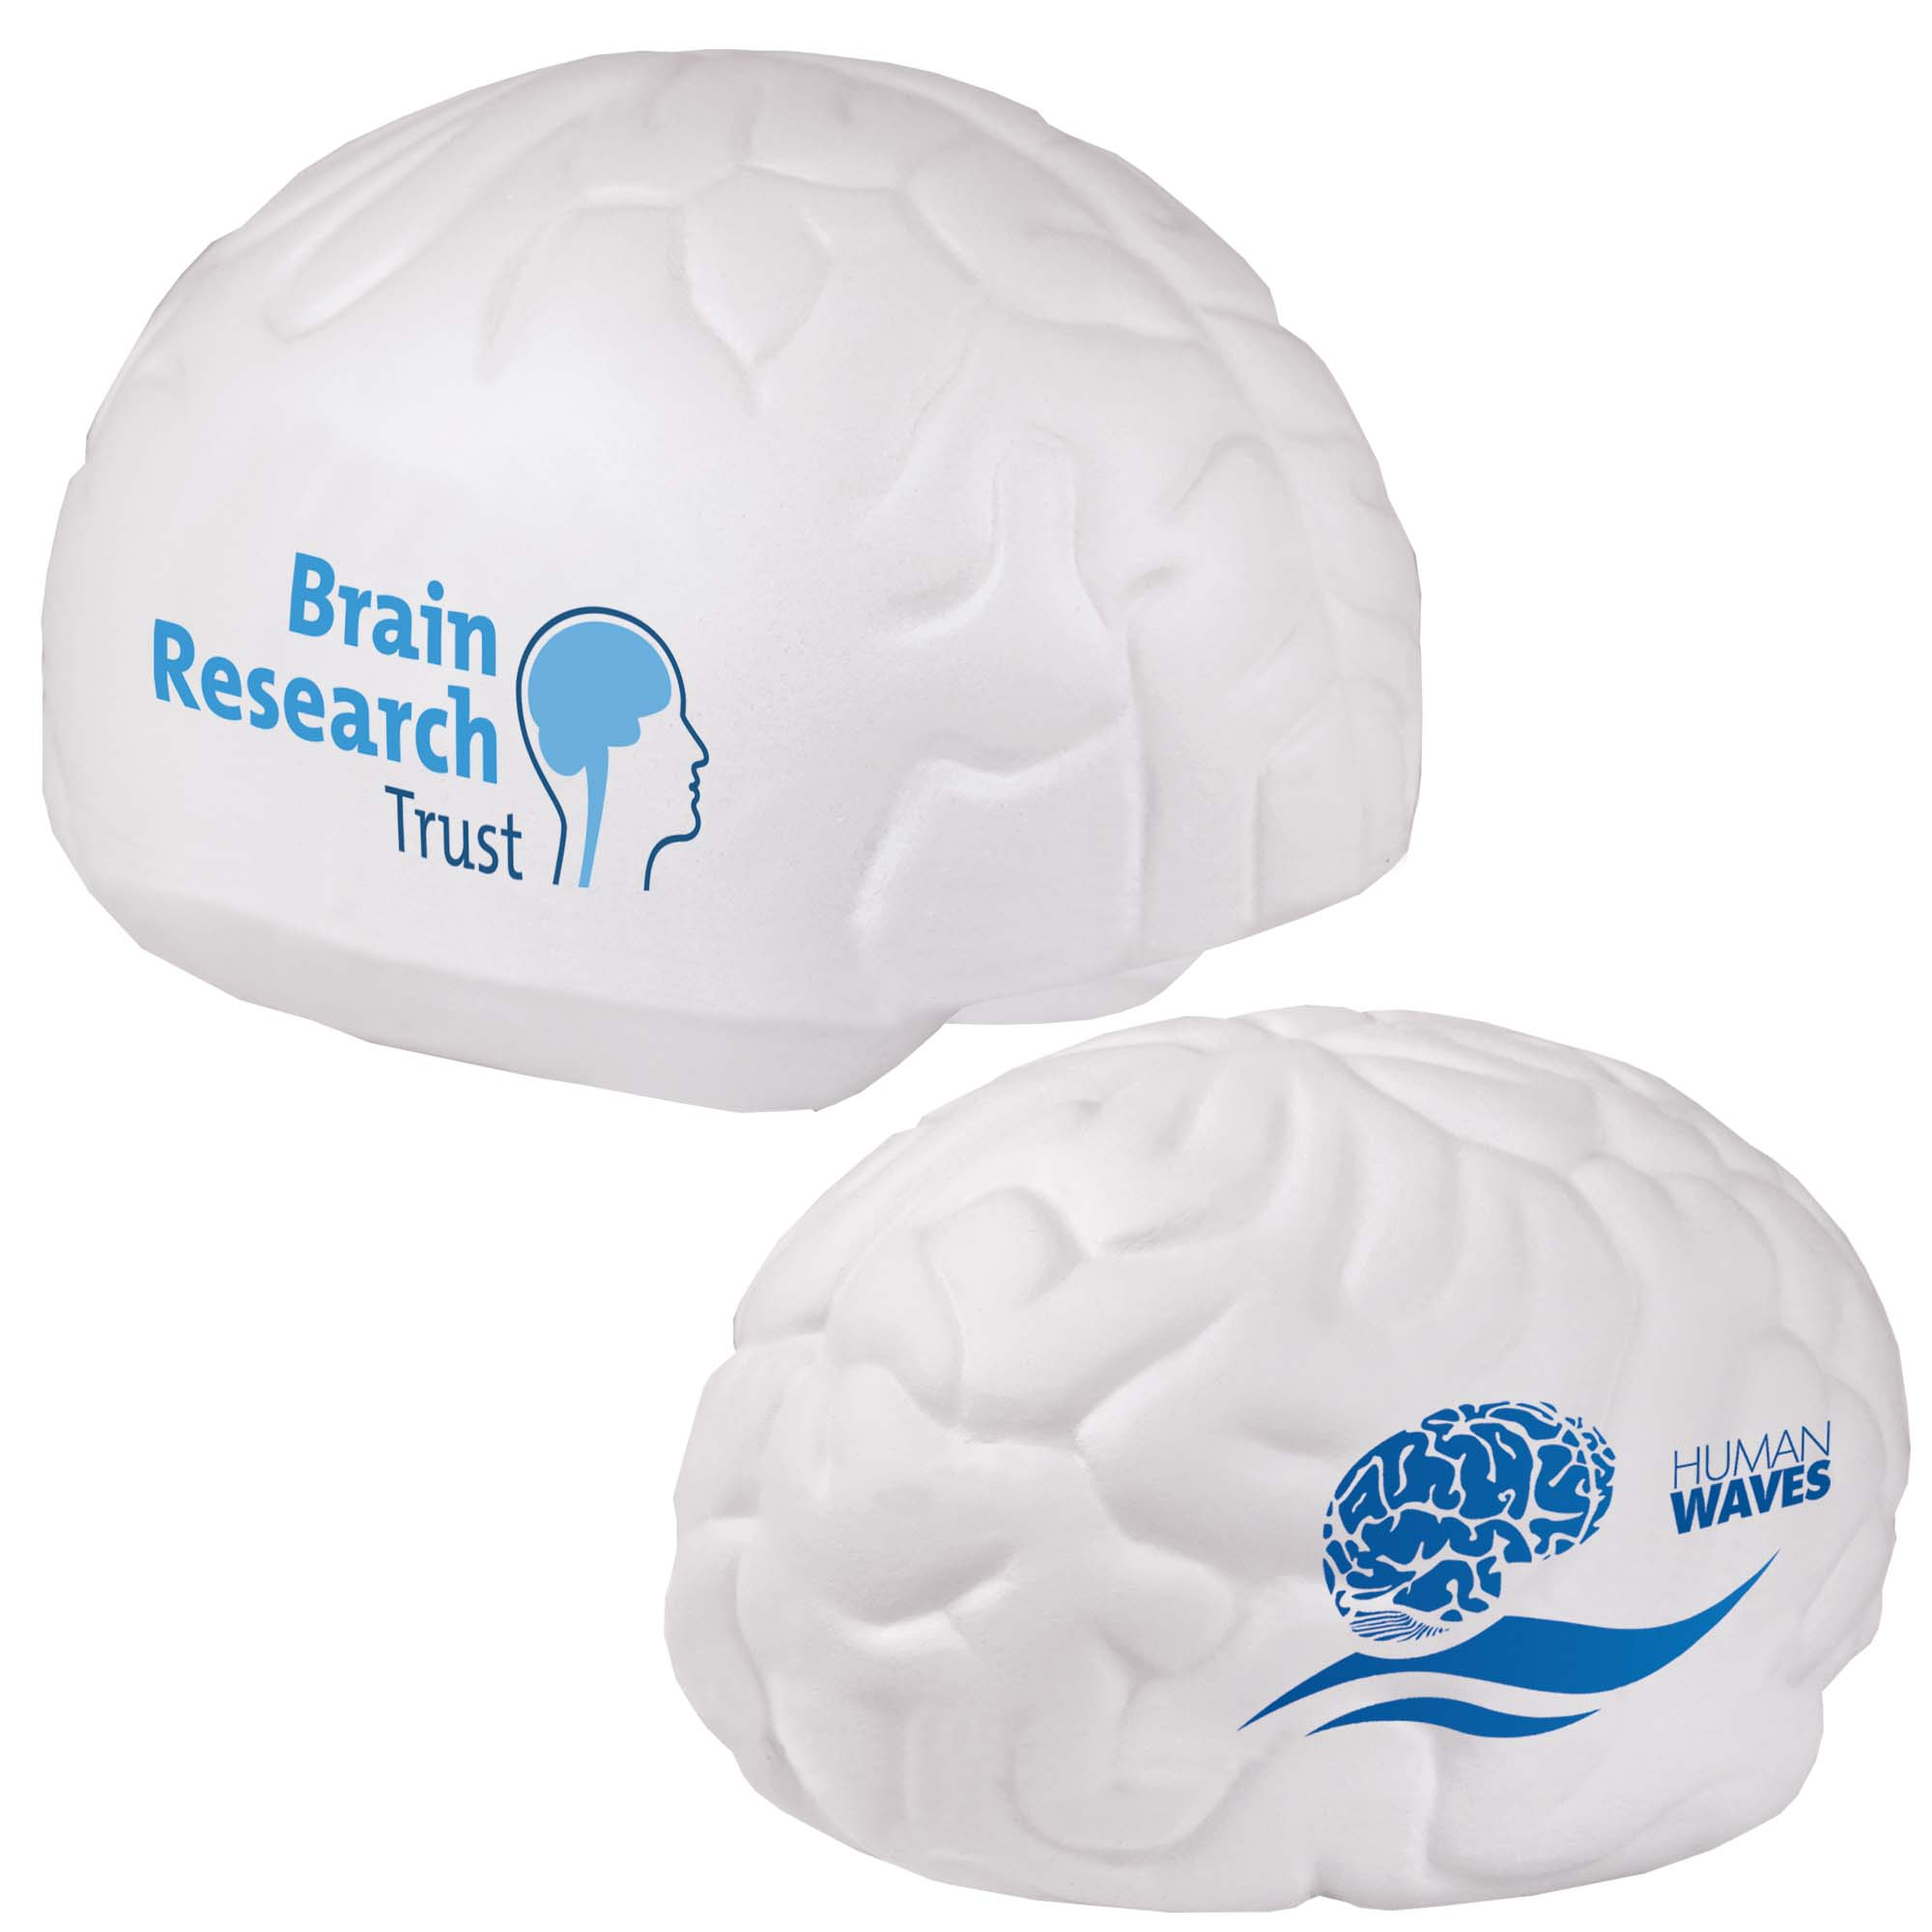 Promotional Brain Shaped Stress